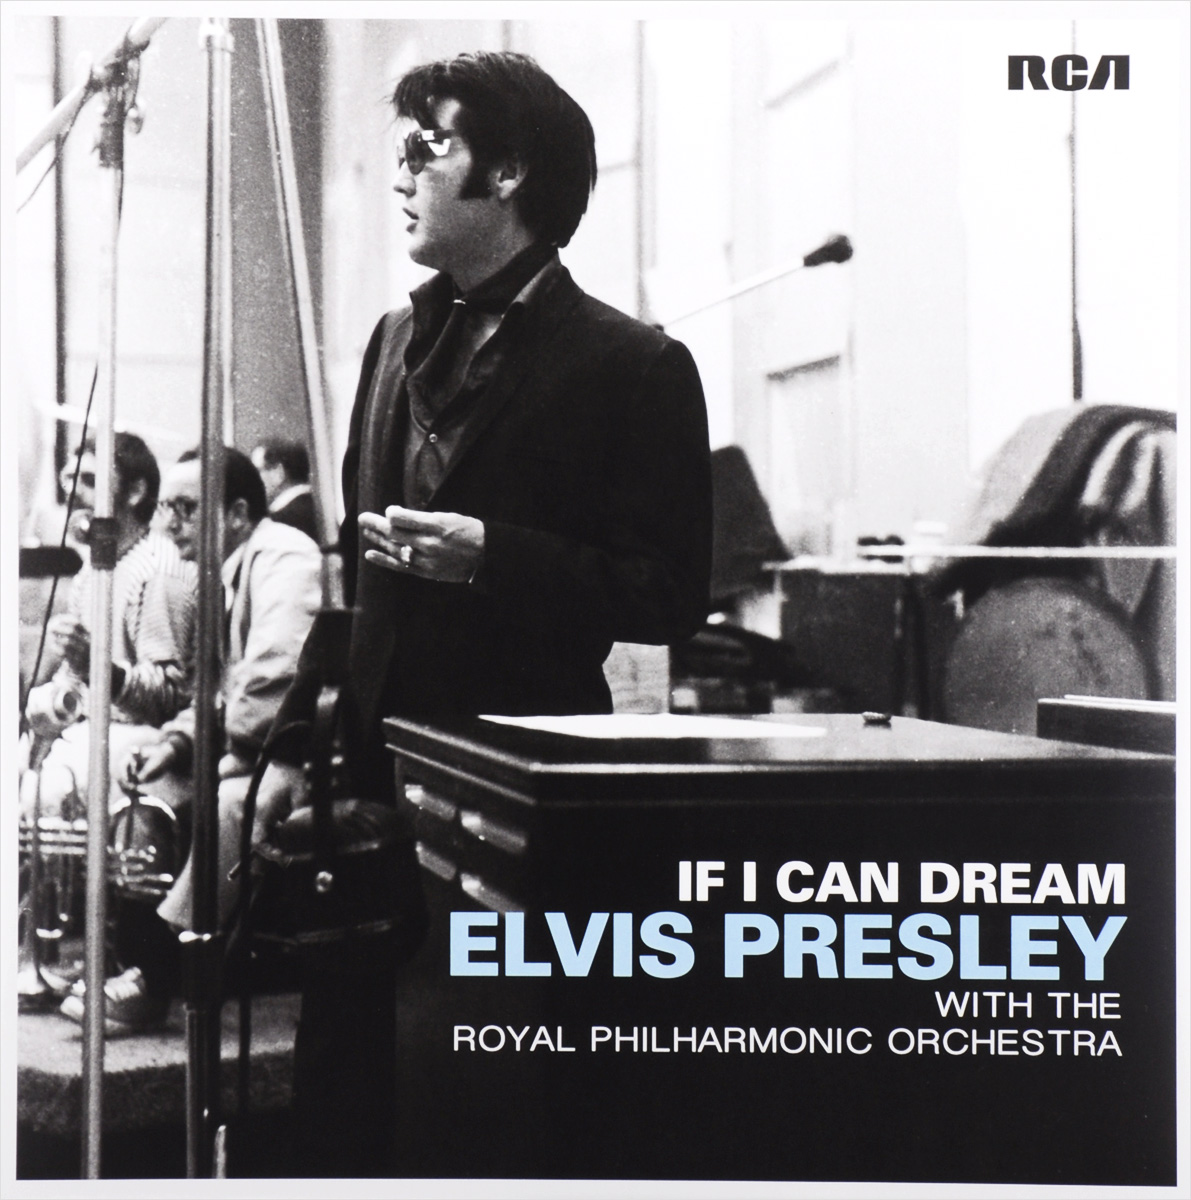 Элвис Пресли,The Royal Philharmonic Orchestra Elvis Presley With The Royal Philharmonic Orchestra. If I Can Dream (2 LP) the royal philharmonic orchestra royal philharmonic orchestra the greatest hits of police